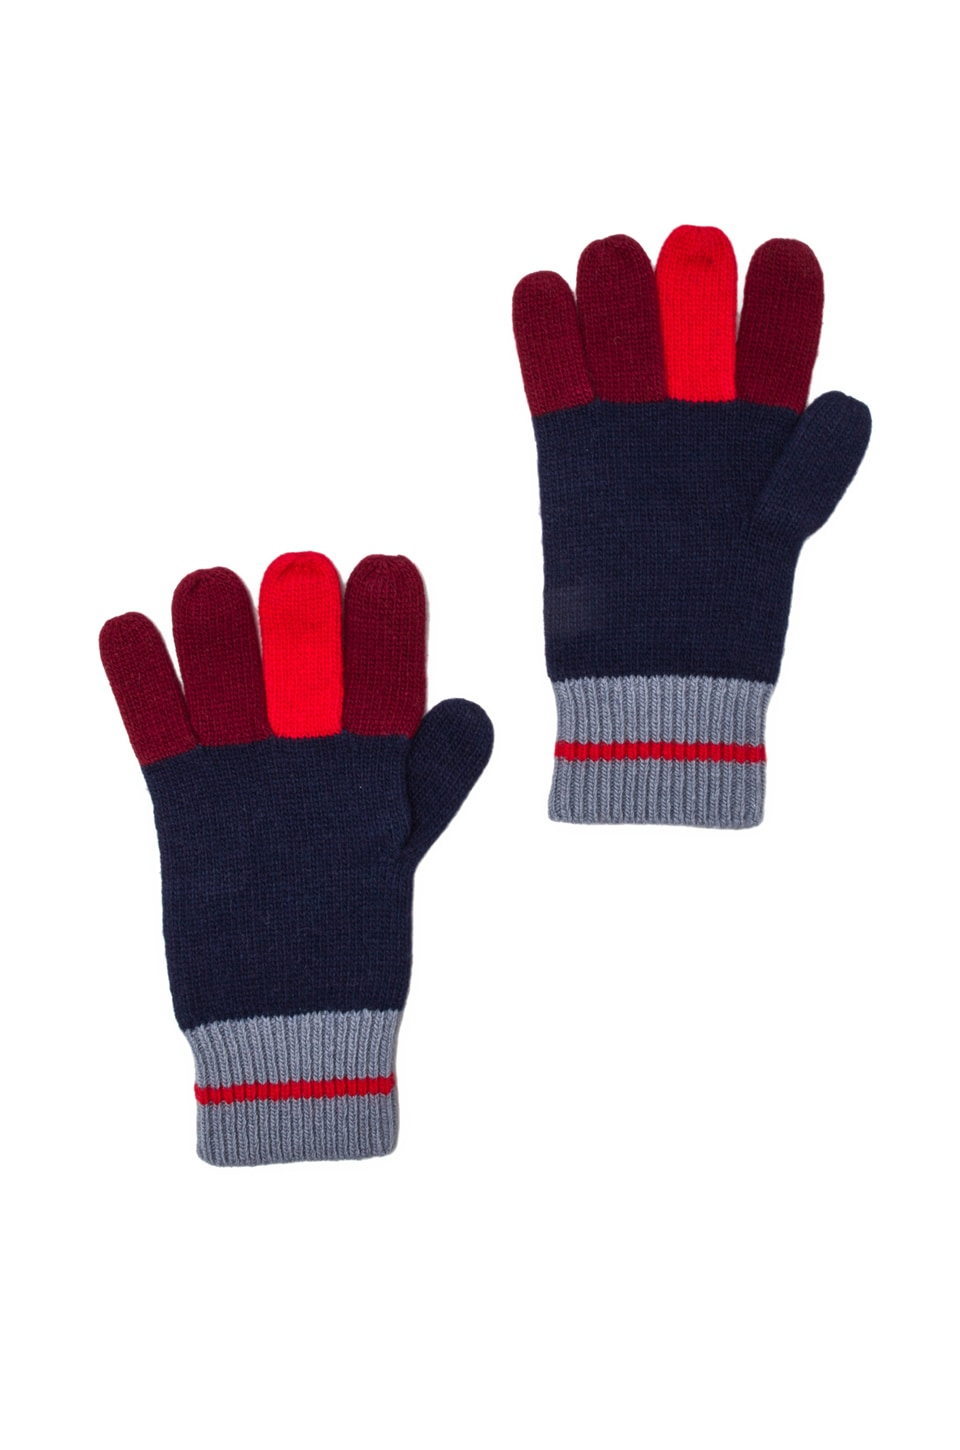 Jack Spade Arden Gloves in Multi